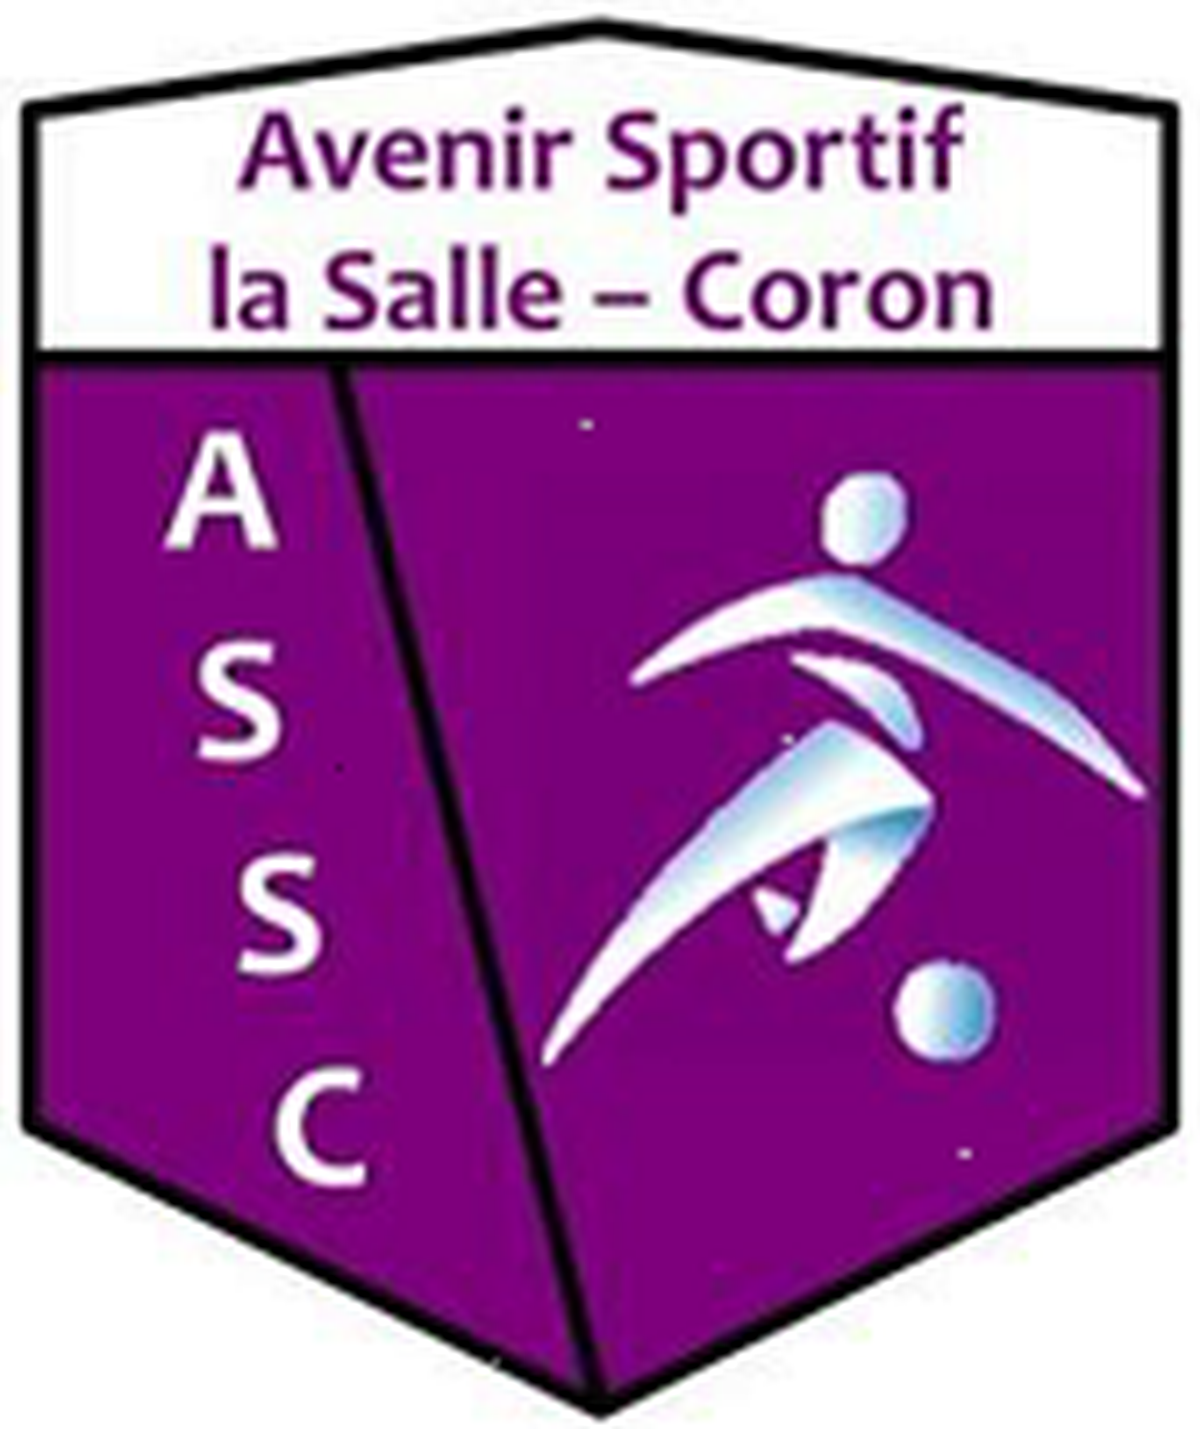 http://s3.static-footeo.com/uploads/as-lasalle-coron/logo__ou7clx.png